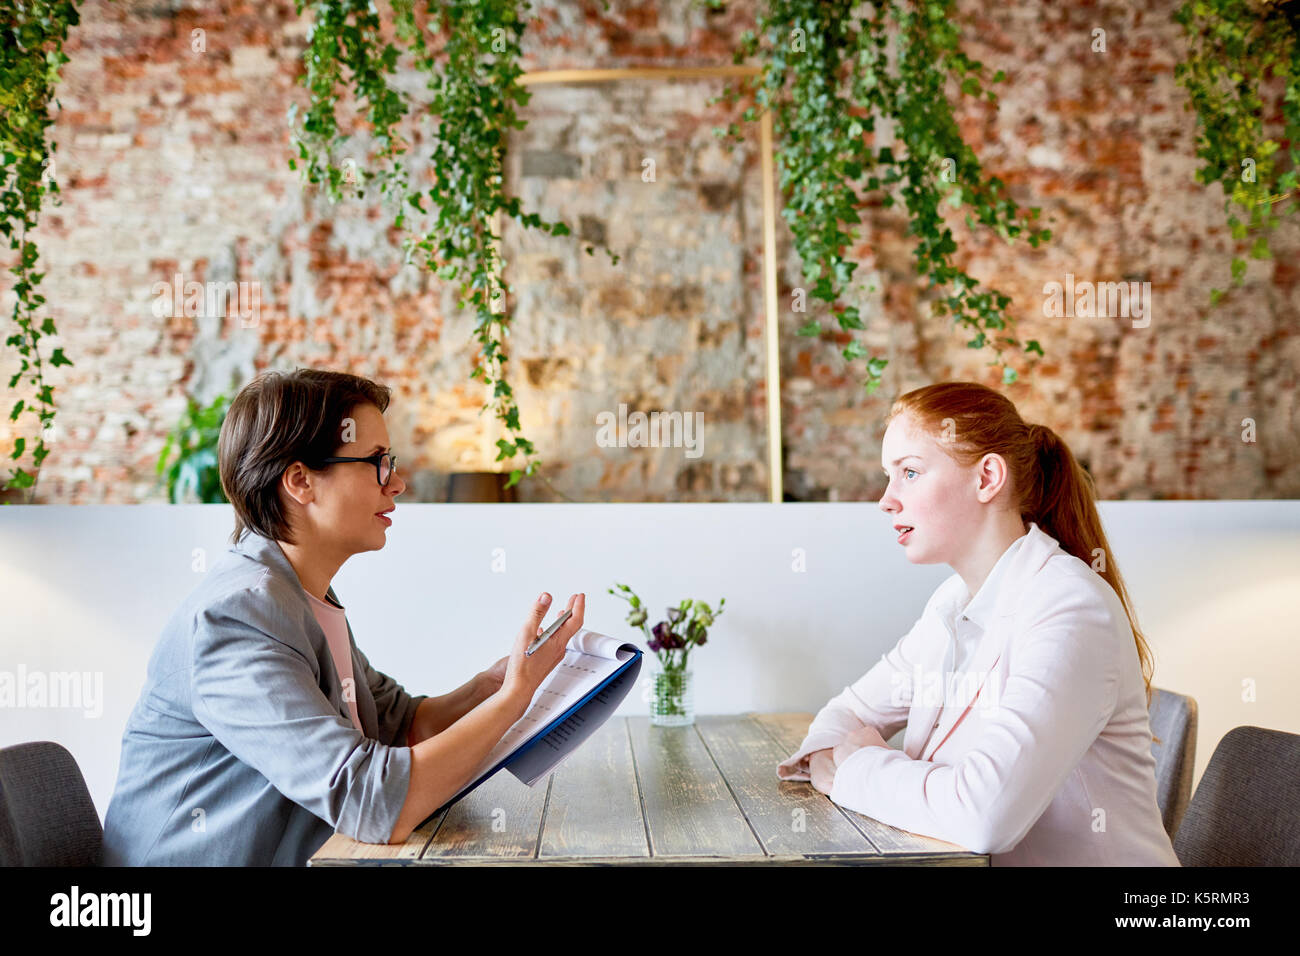 Interview in cafe - Stock Image